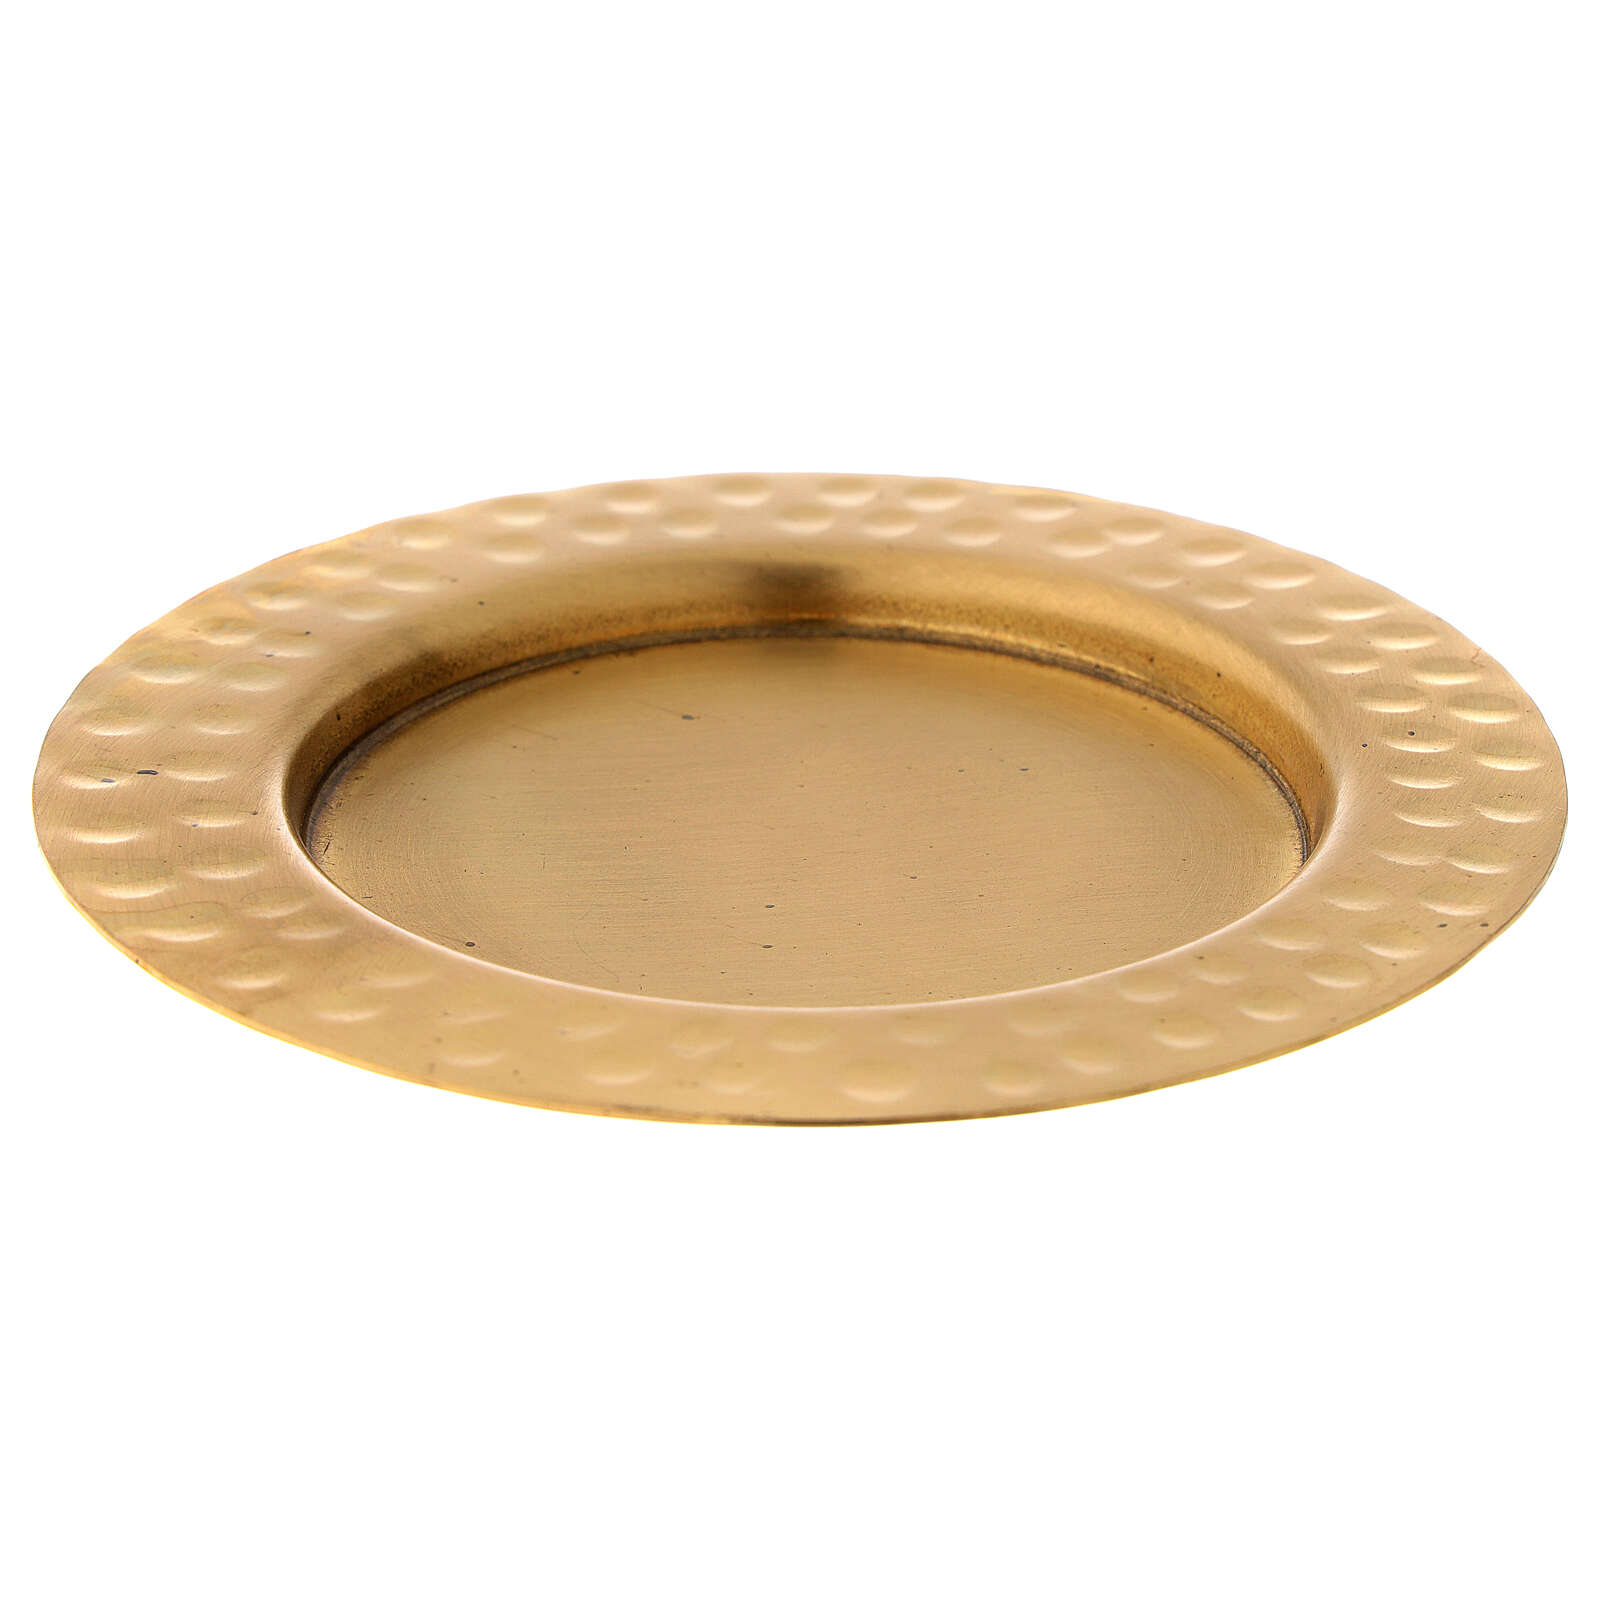 Candle holder plate in gold plated brass with satin finish 4 in 3